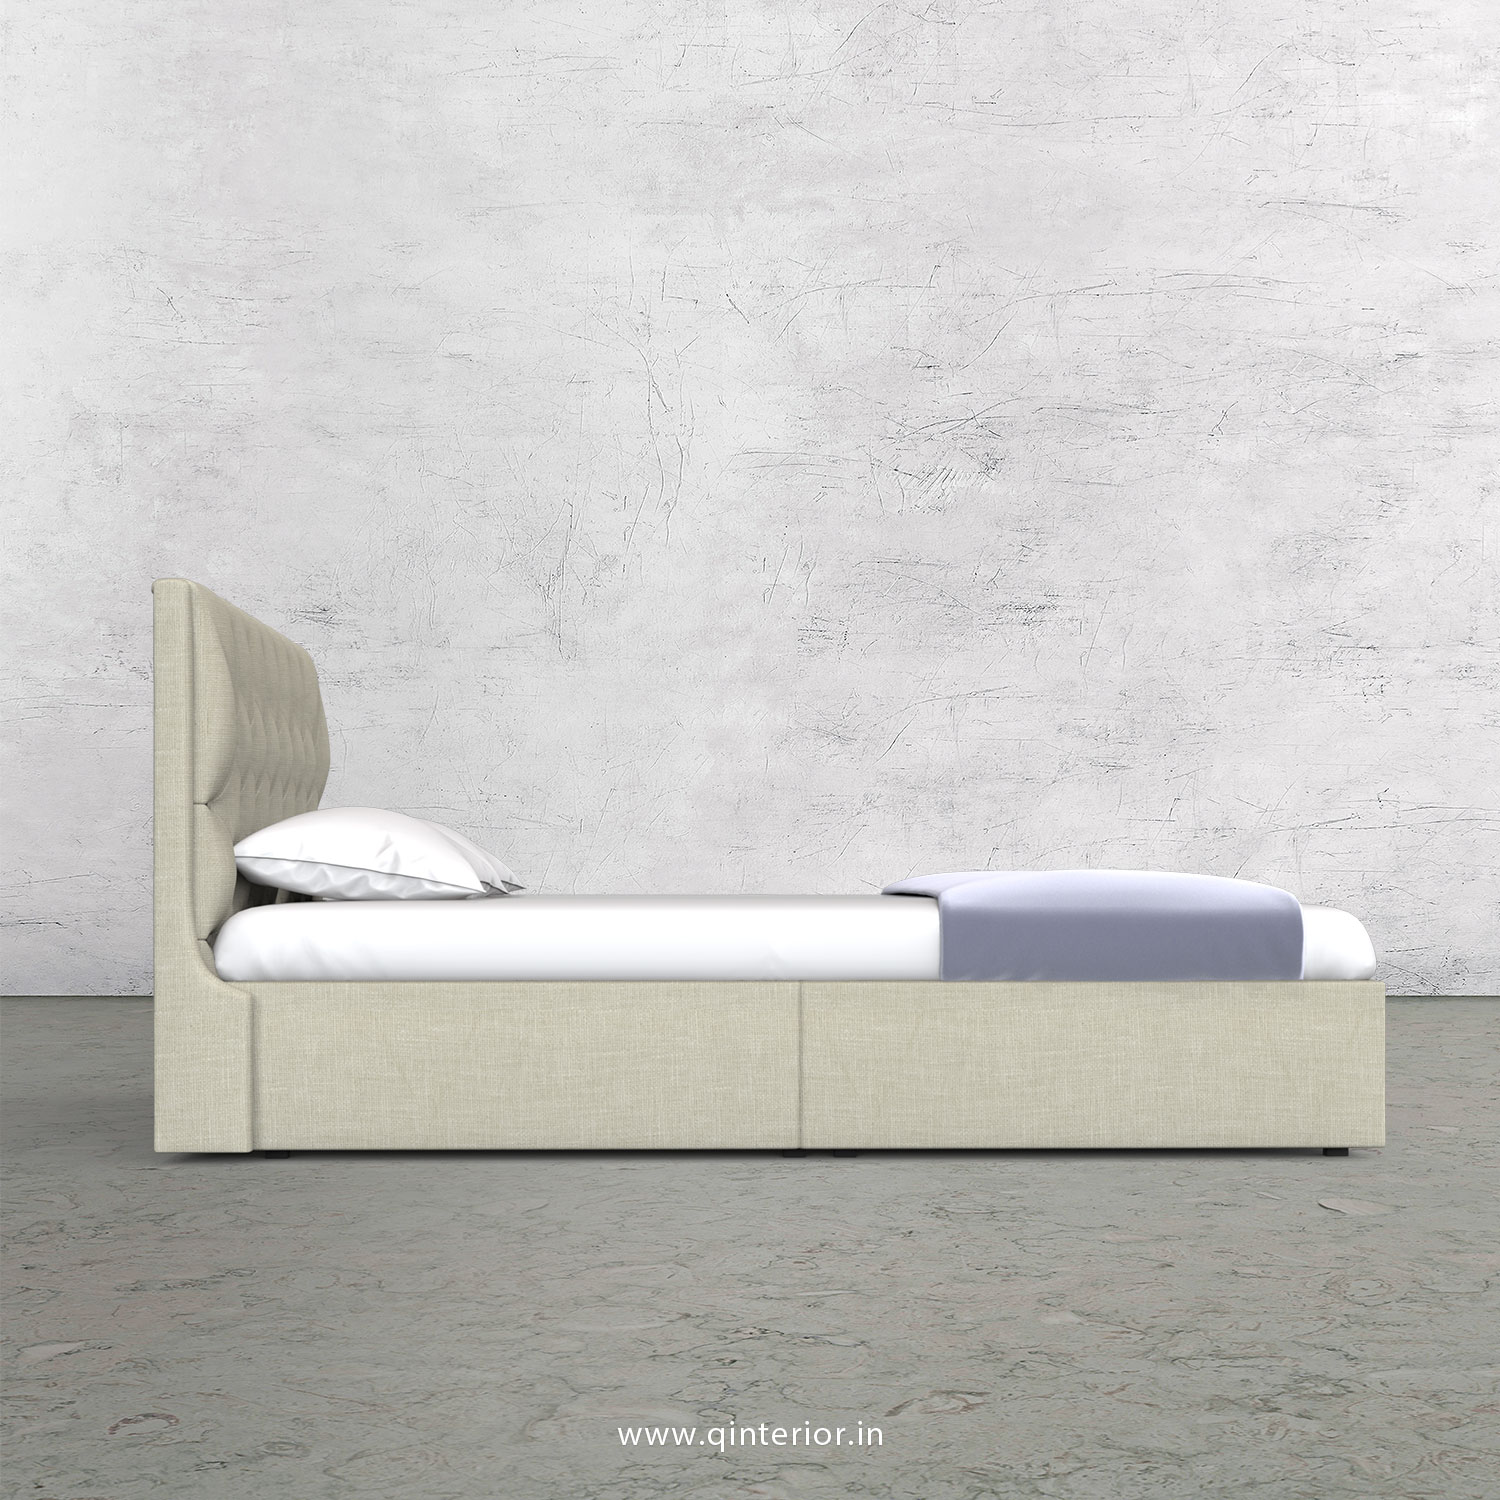 Scorpius King Size Storage Bed in Cotton Plain - KBD001 CP03